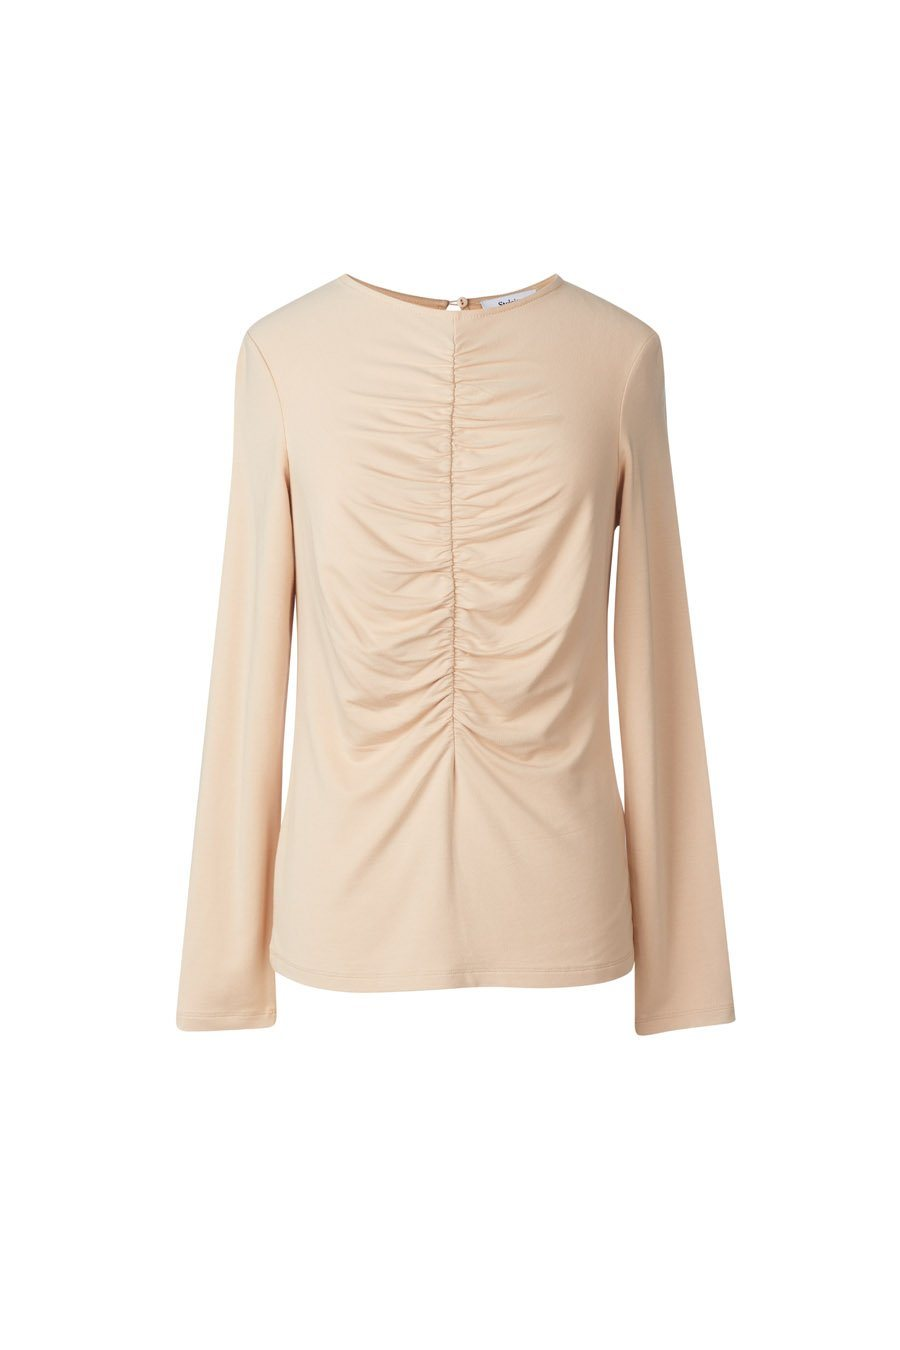 CATHY TOP - NUDE Top Stylein